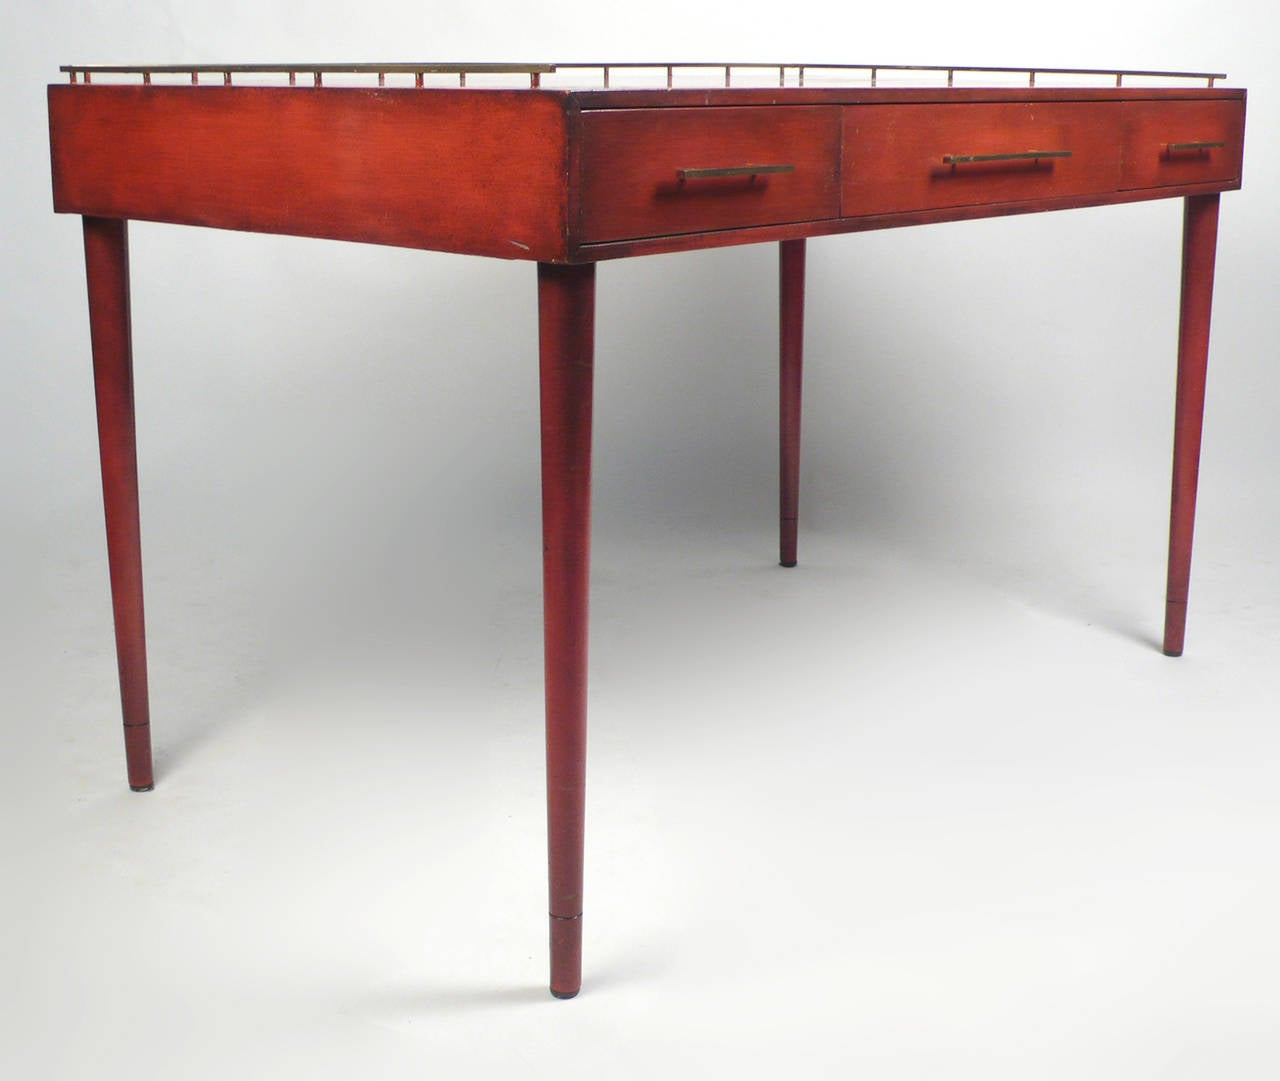 unique writing desk You'll love our affordable computer desks, home office desks and unique wood desks from around the world plus, free shipping on $150+ at world market.